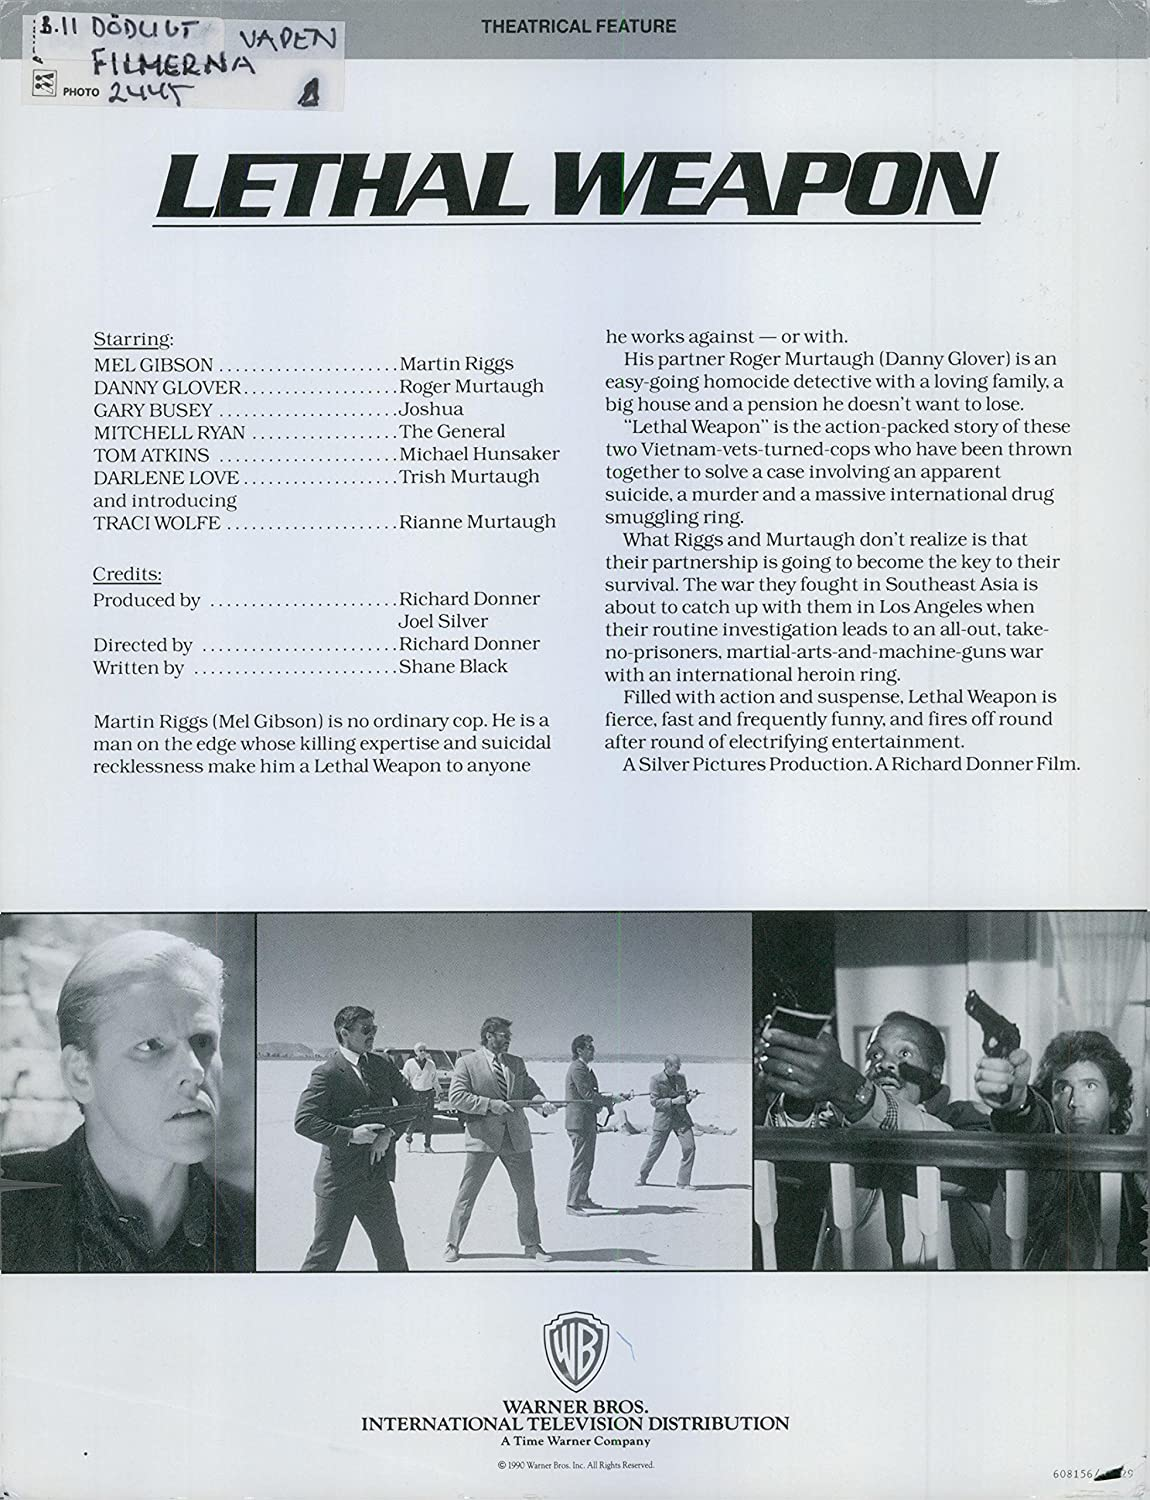 Amazon.com: Vintage photo of Lethal Weapon an American comedy series ...